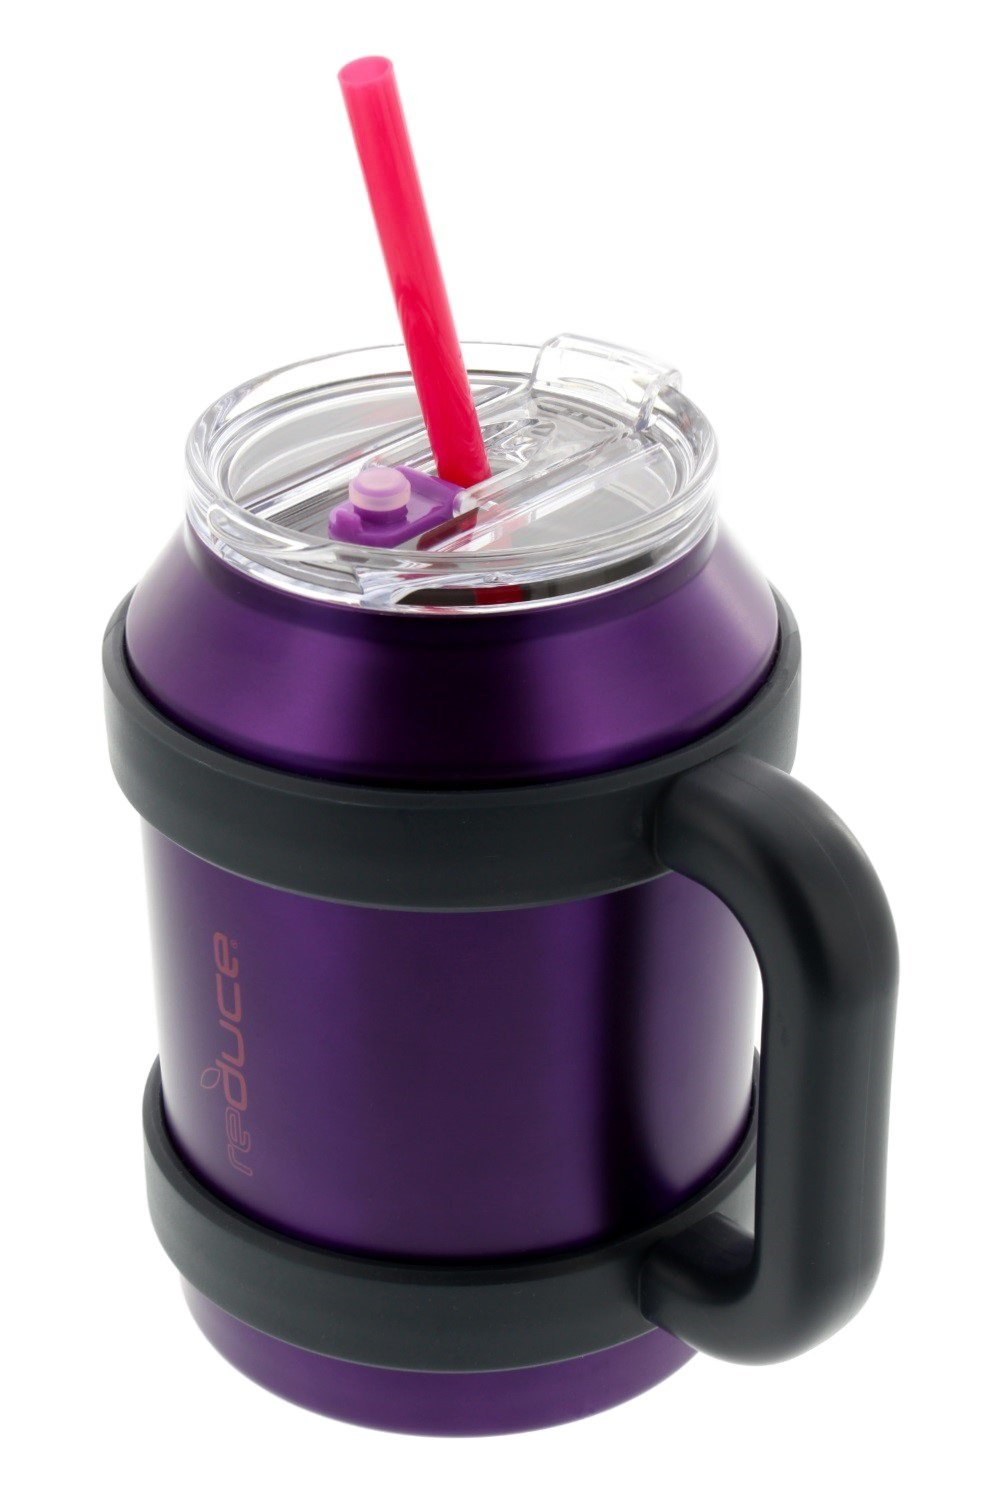 Stainless Steel Large 50oz Cold-1 Thermal Coffee & Water Mug by REDUCE - Dual Wall Vacuum Insulated Mug - Perfect for Hot & Cold Drinks - Includes Straw, Leak-Proof Lid and Handle, Purple w/Pink